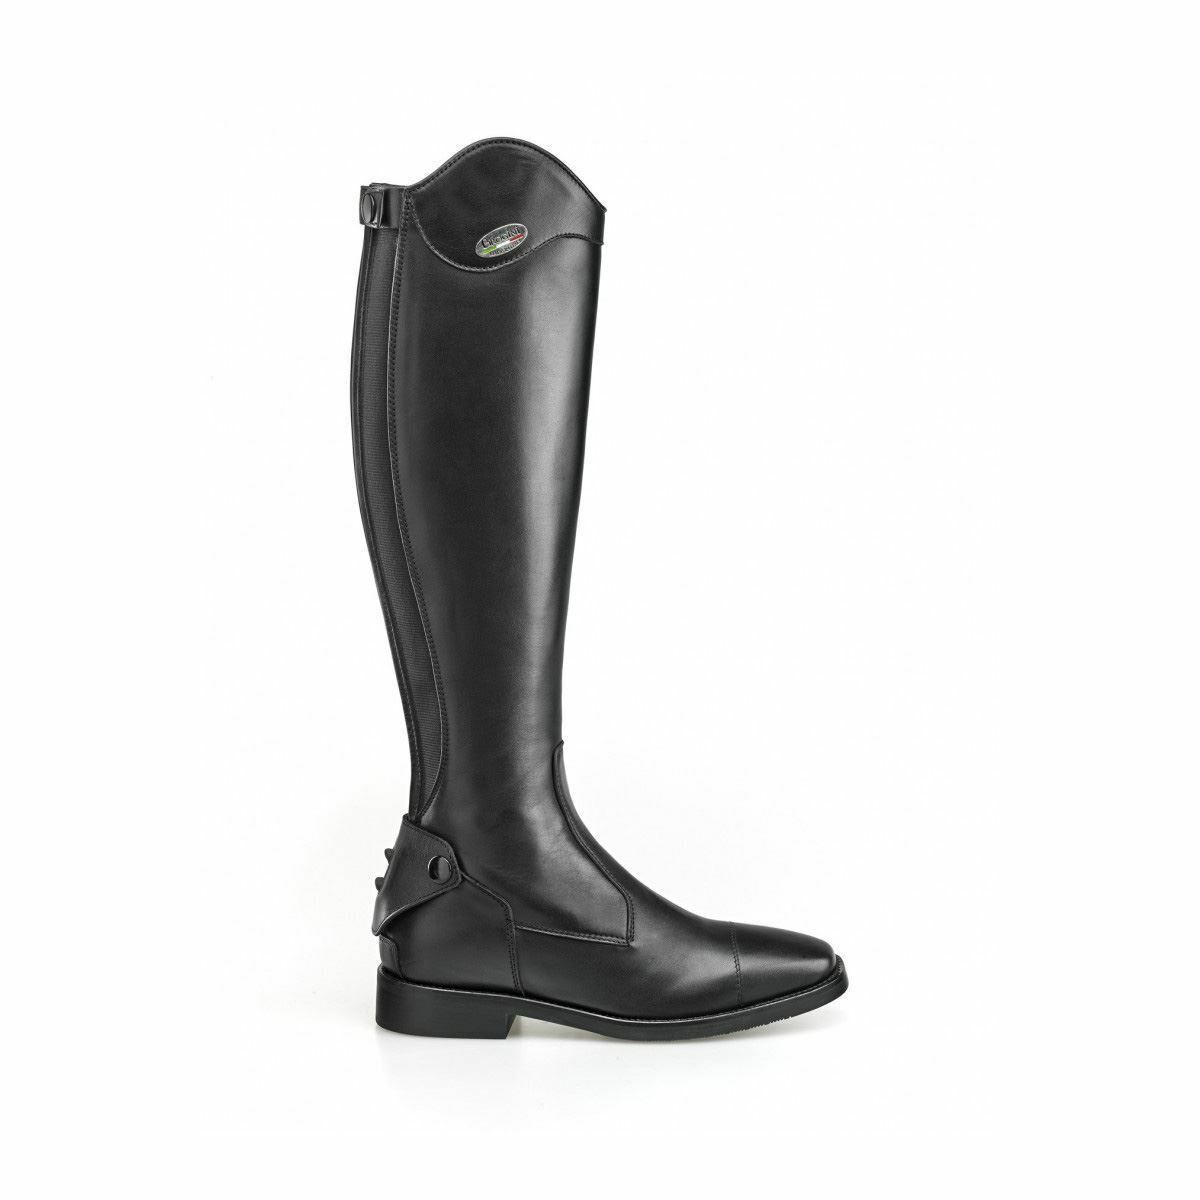 BROGINI LIVORNO WAVE TOP DRESS LONG TALL LEATHER RIDING BOOT SIZE 4.5